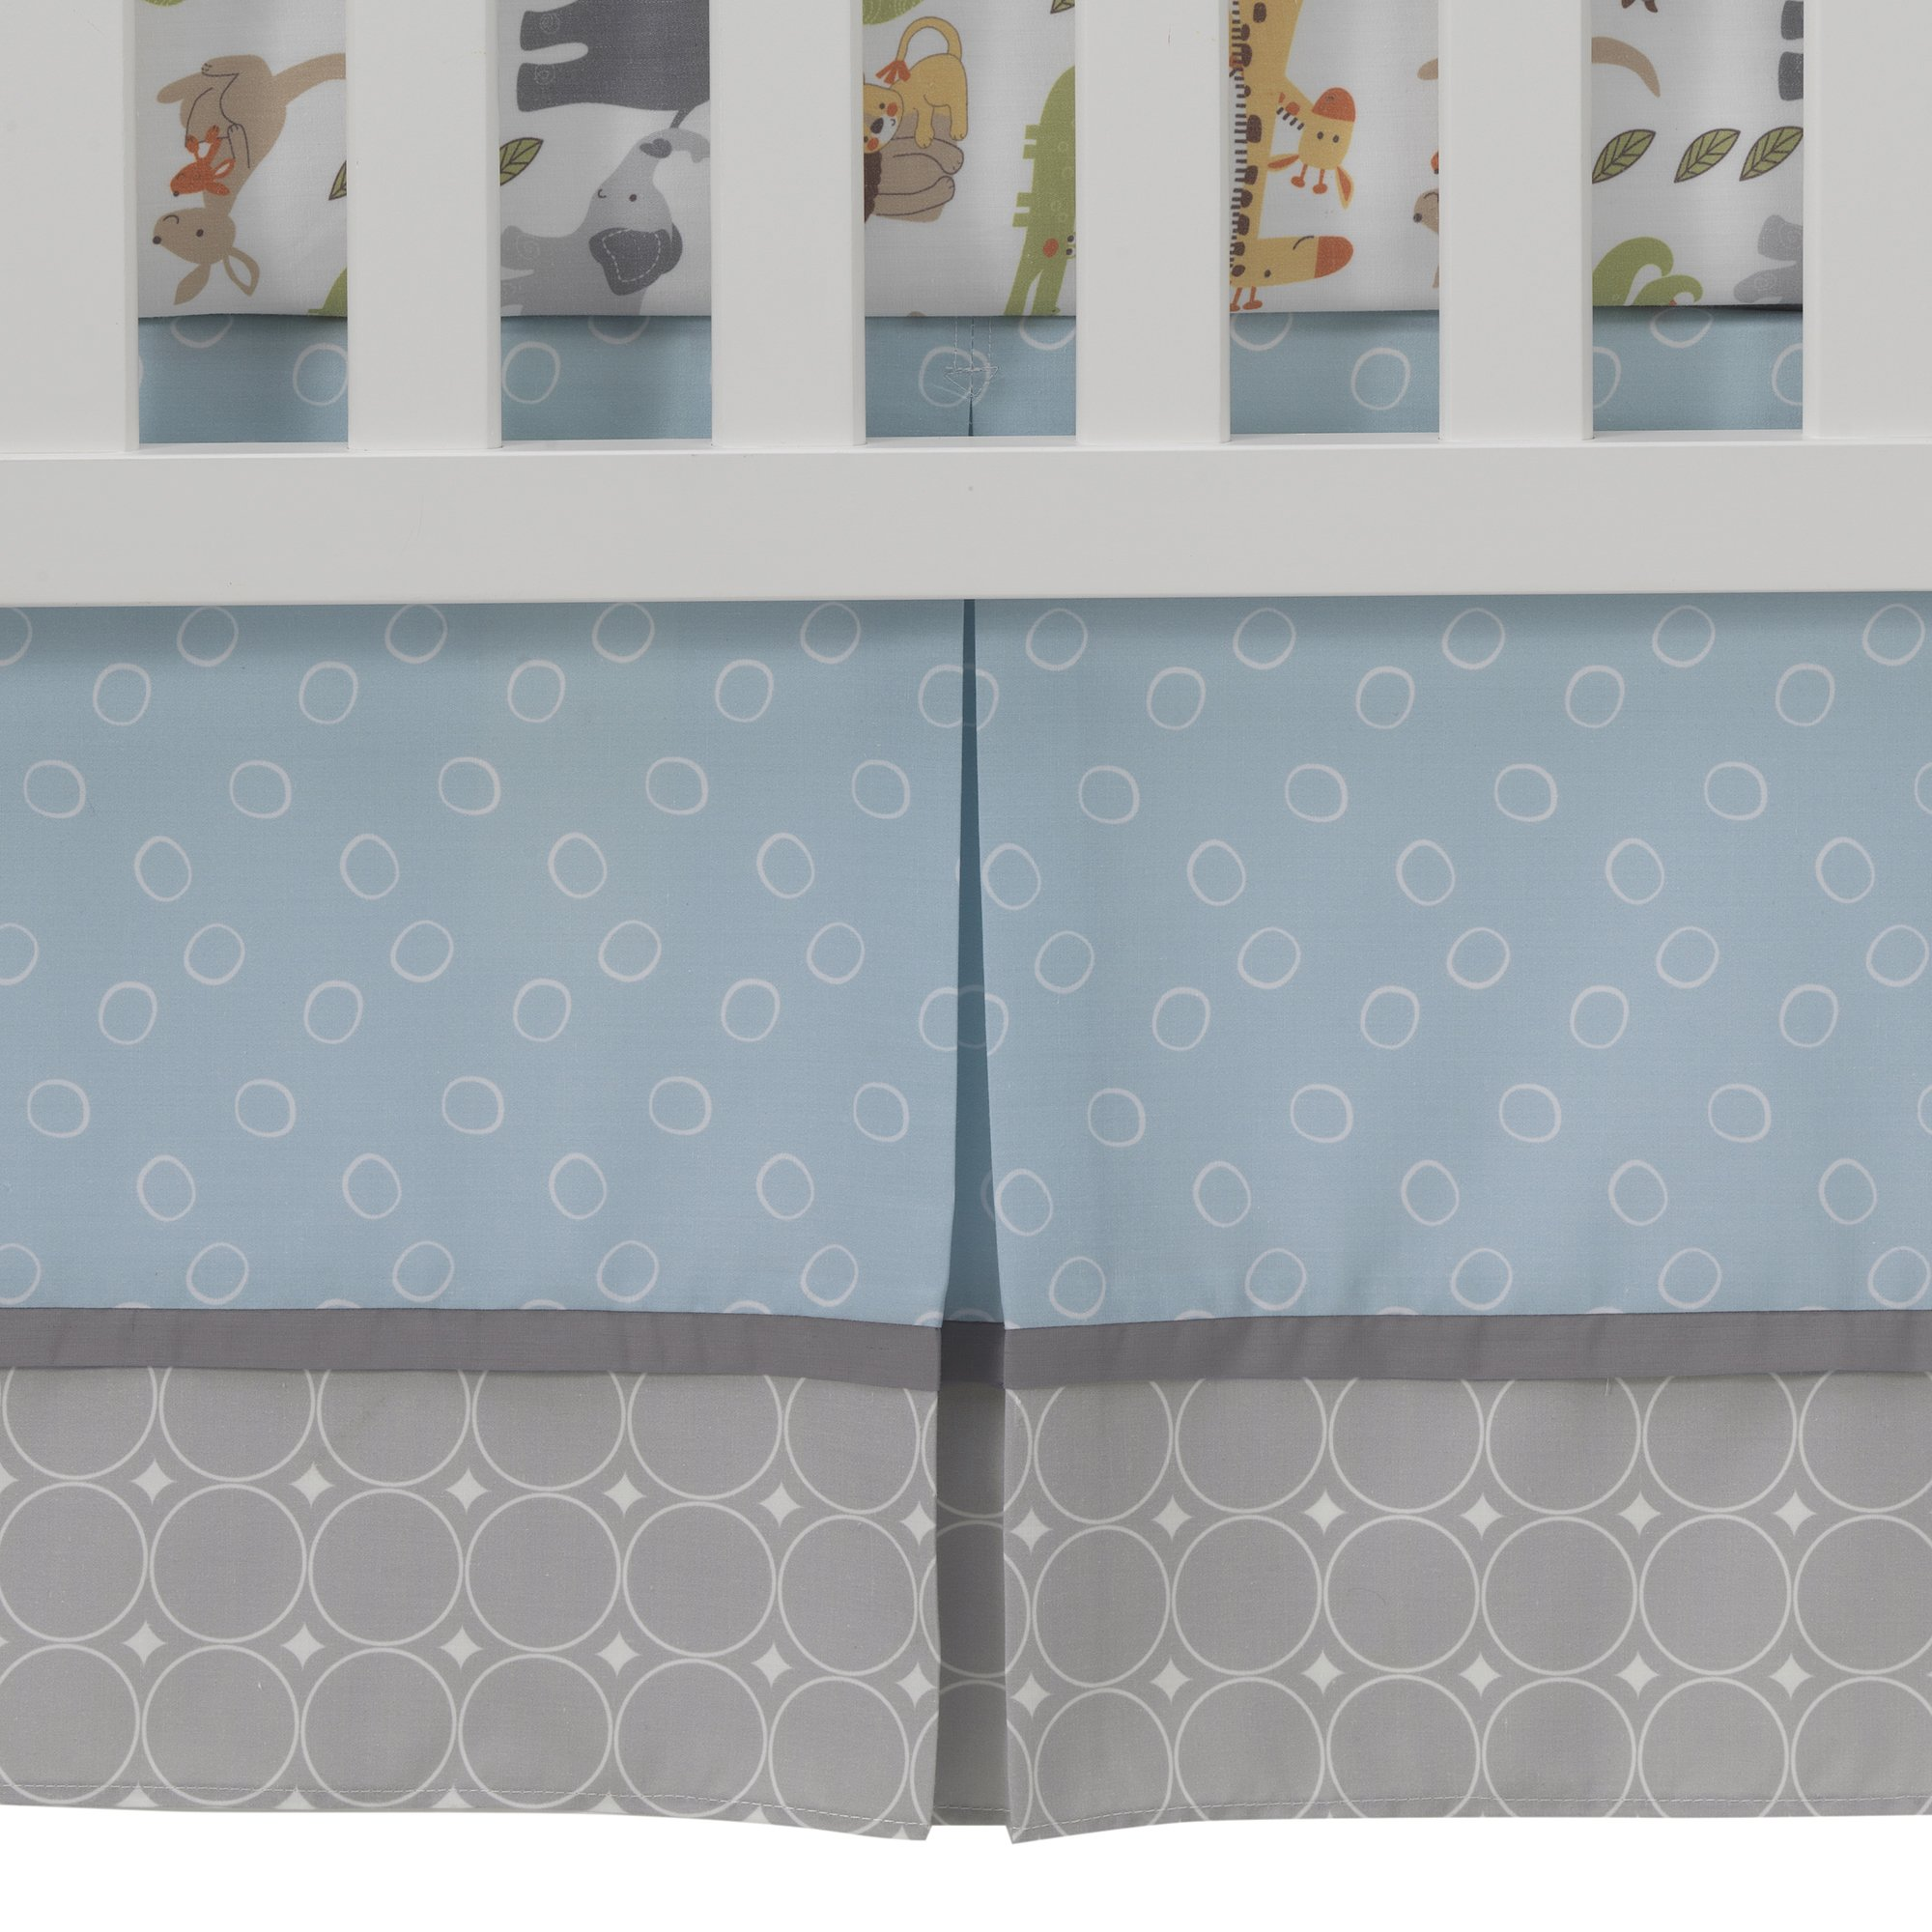 Lambs & Ivy Two of A Kind Noah'S Ark Animals 4 Piece Crib Bedding Set, Blue/Gray by Lambs & Ivy (Image #7)